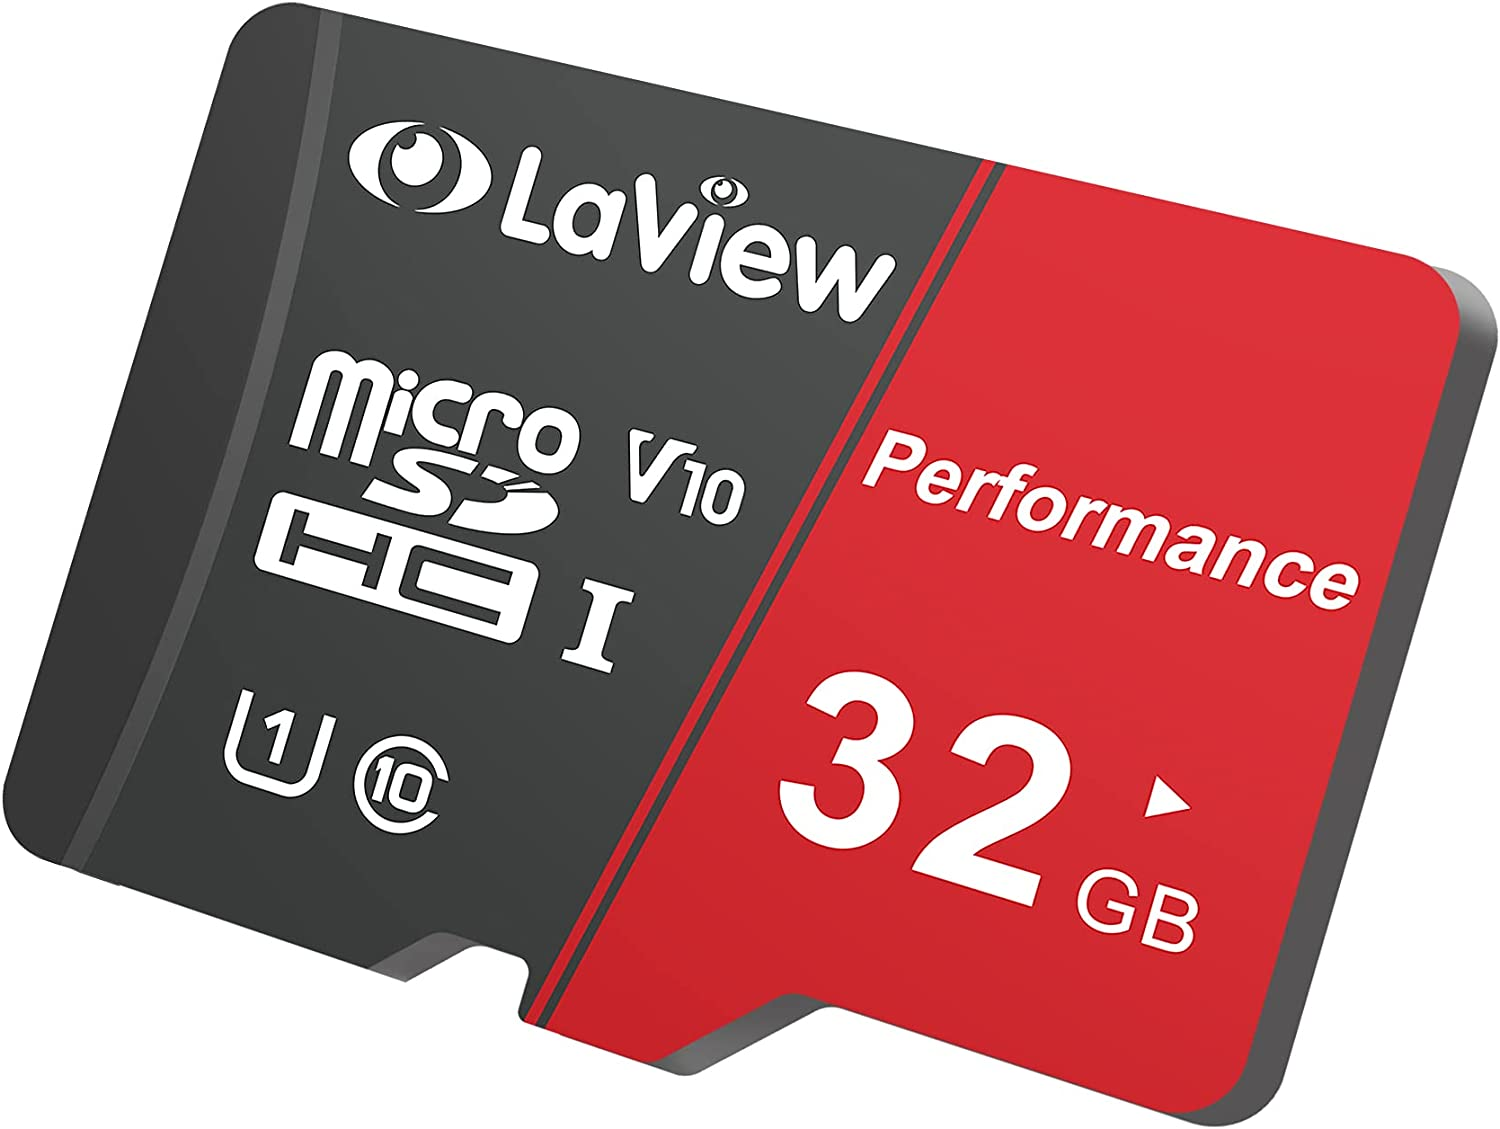 LaView 32GB Micro SD Card, Micro SDXC UHS-I Memory Card – 95MB/s,633X,U1,C10, Full HD Video V10, A1, FAT32, High Speed Flash TF Card P500 for Computer with Adapter/Phone/Tablet/PC